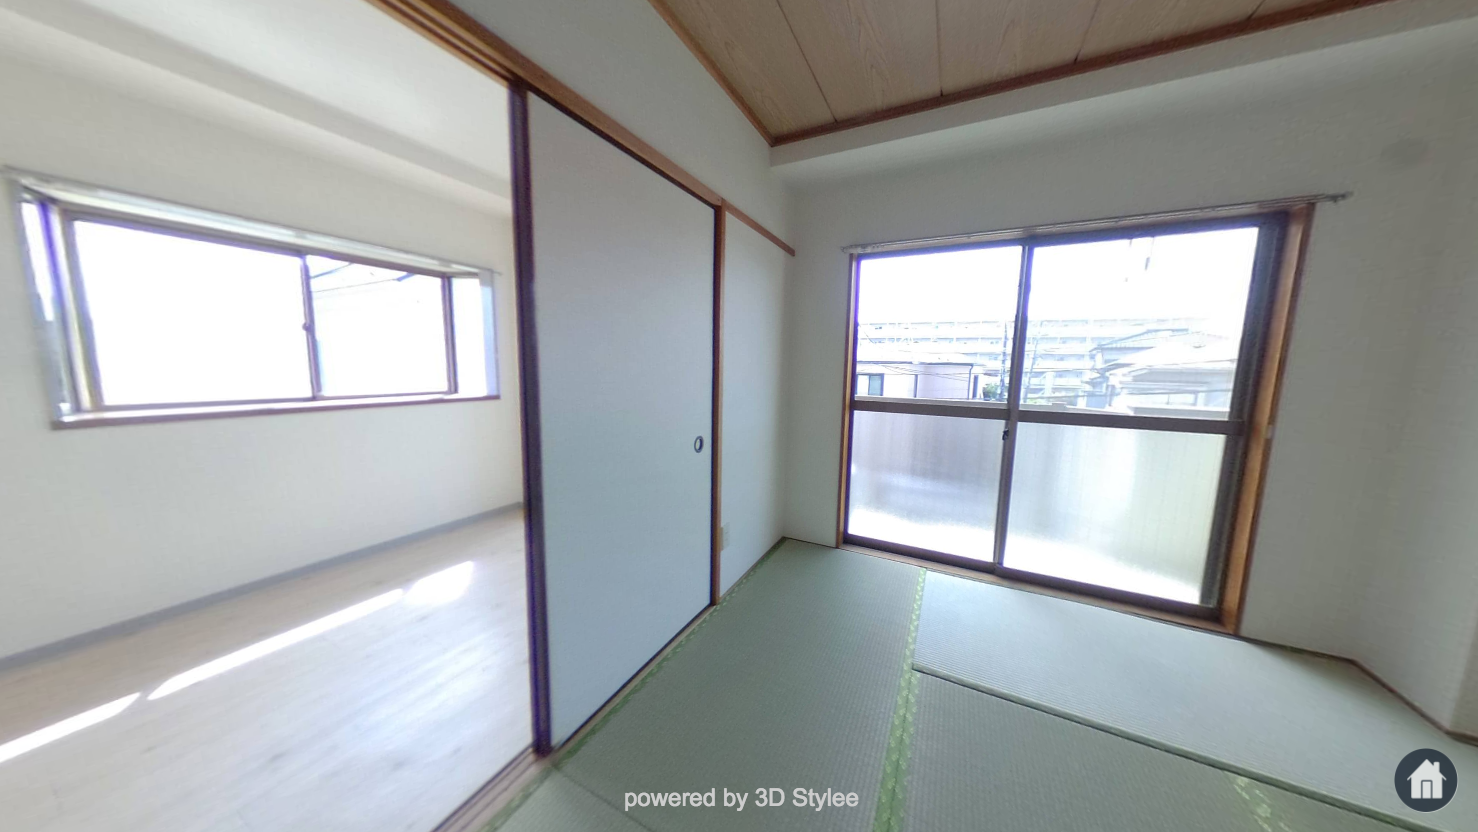 Typical japanese apartment interior - 360 Virtual Walkthrough Take A Tour Of A Typical Japanese Apartment